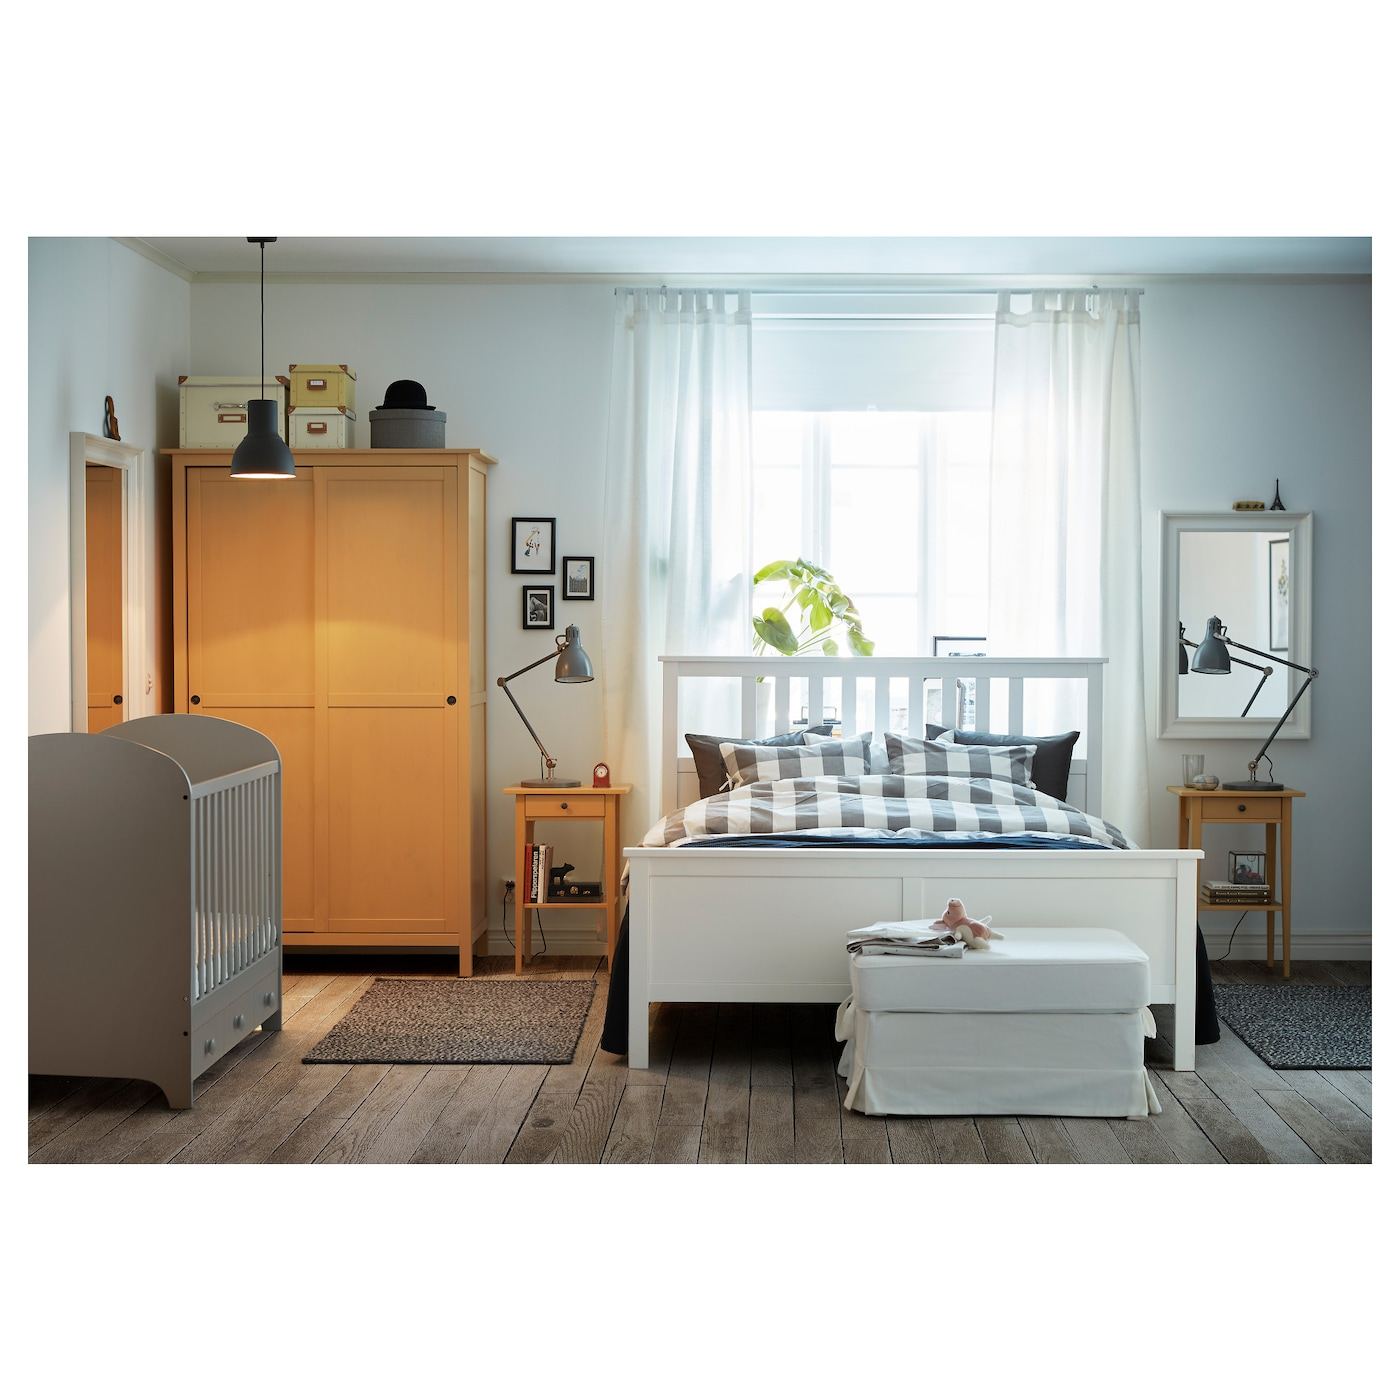 hemnes cadre de lit teint blanc 140 x 200 cm ikea. Black Bedroom Furniture Sets. Home Design Ideas